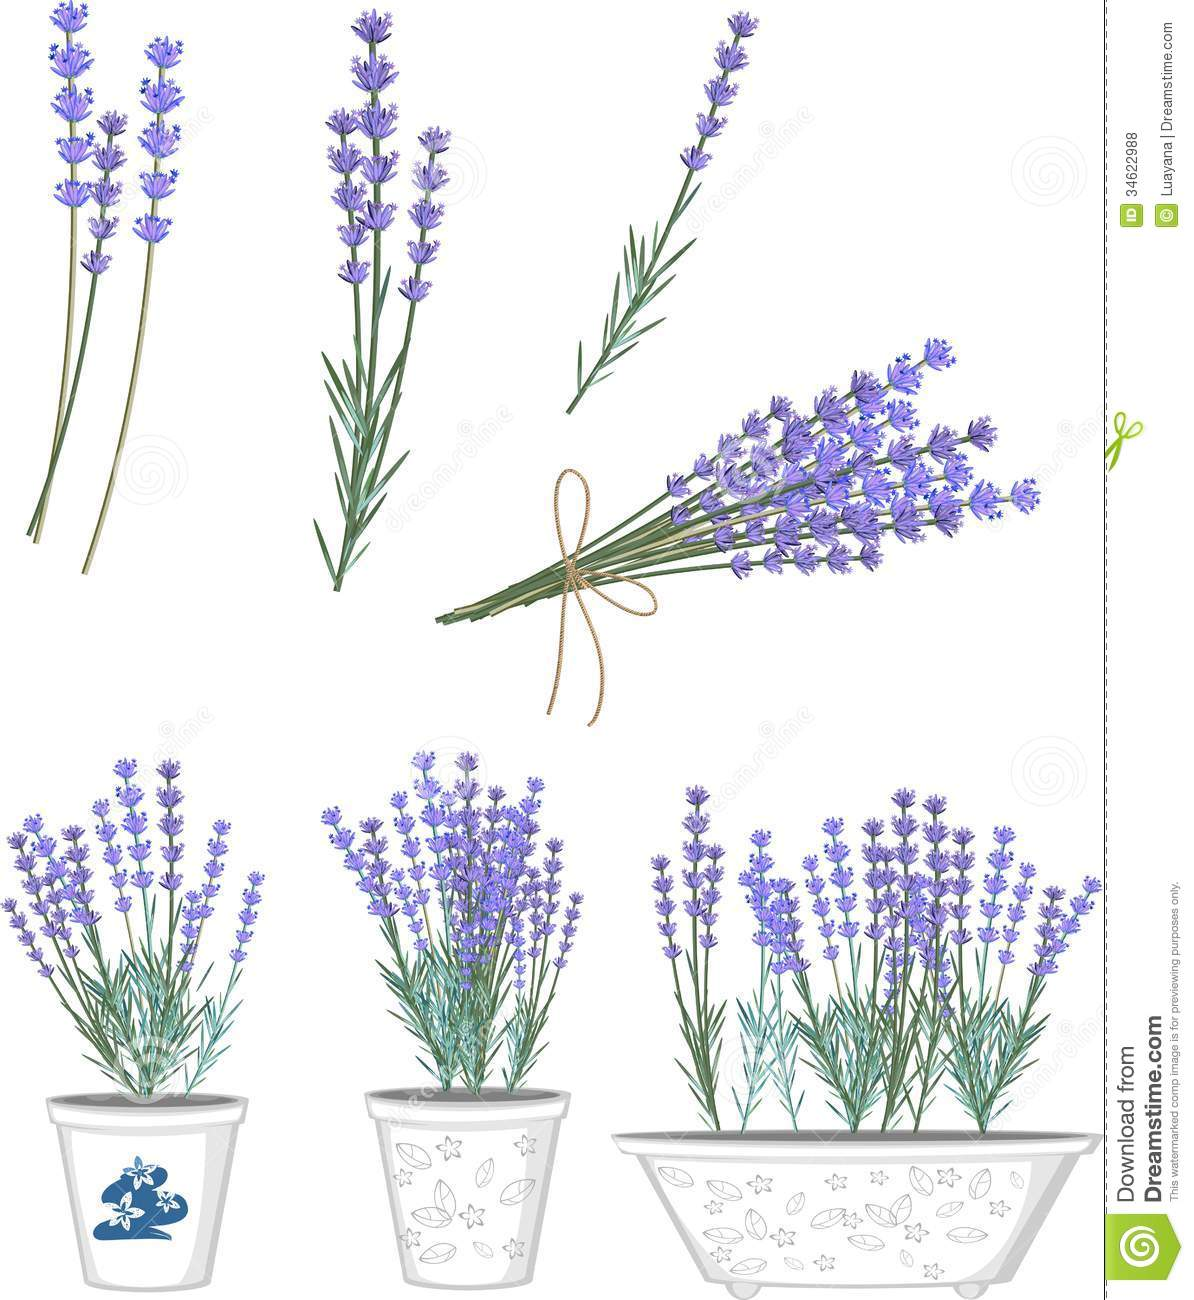 Lavender Flowers Royalty Free Stock Photos Image 34622988